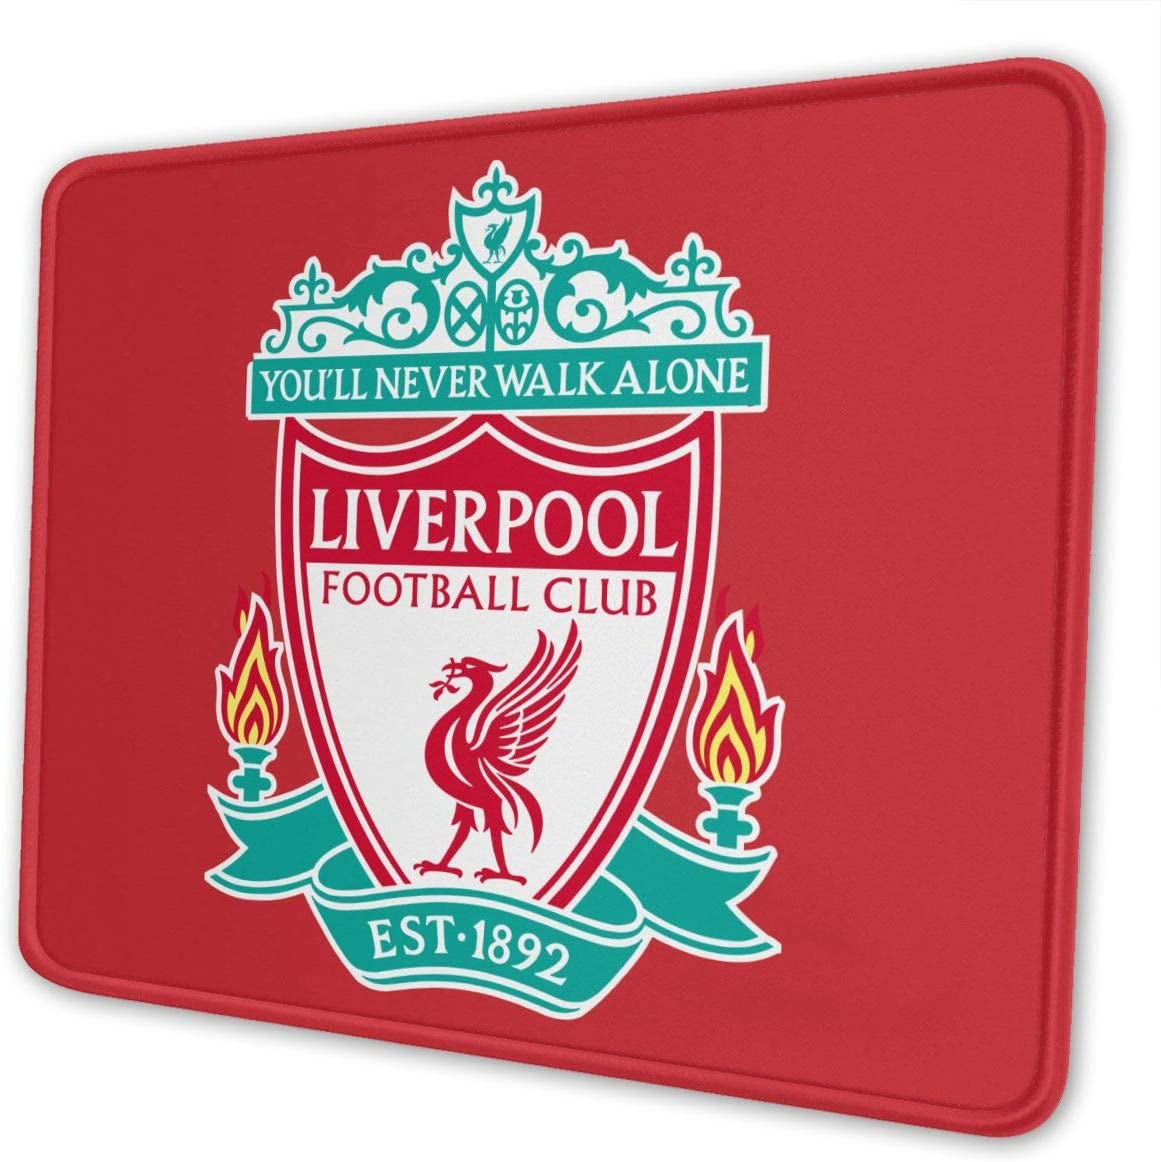 Liverpool F.C. Football Club Logo Football Club Mouse Pad for Laptops Office Computer Mouse Pad